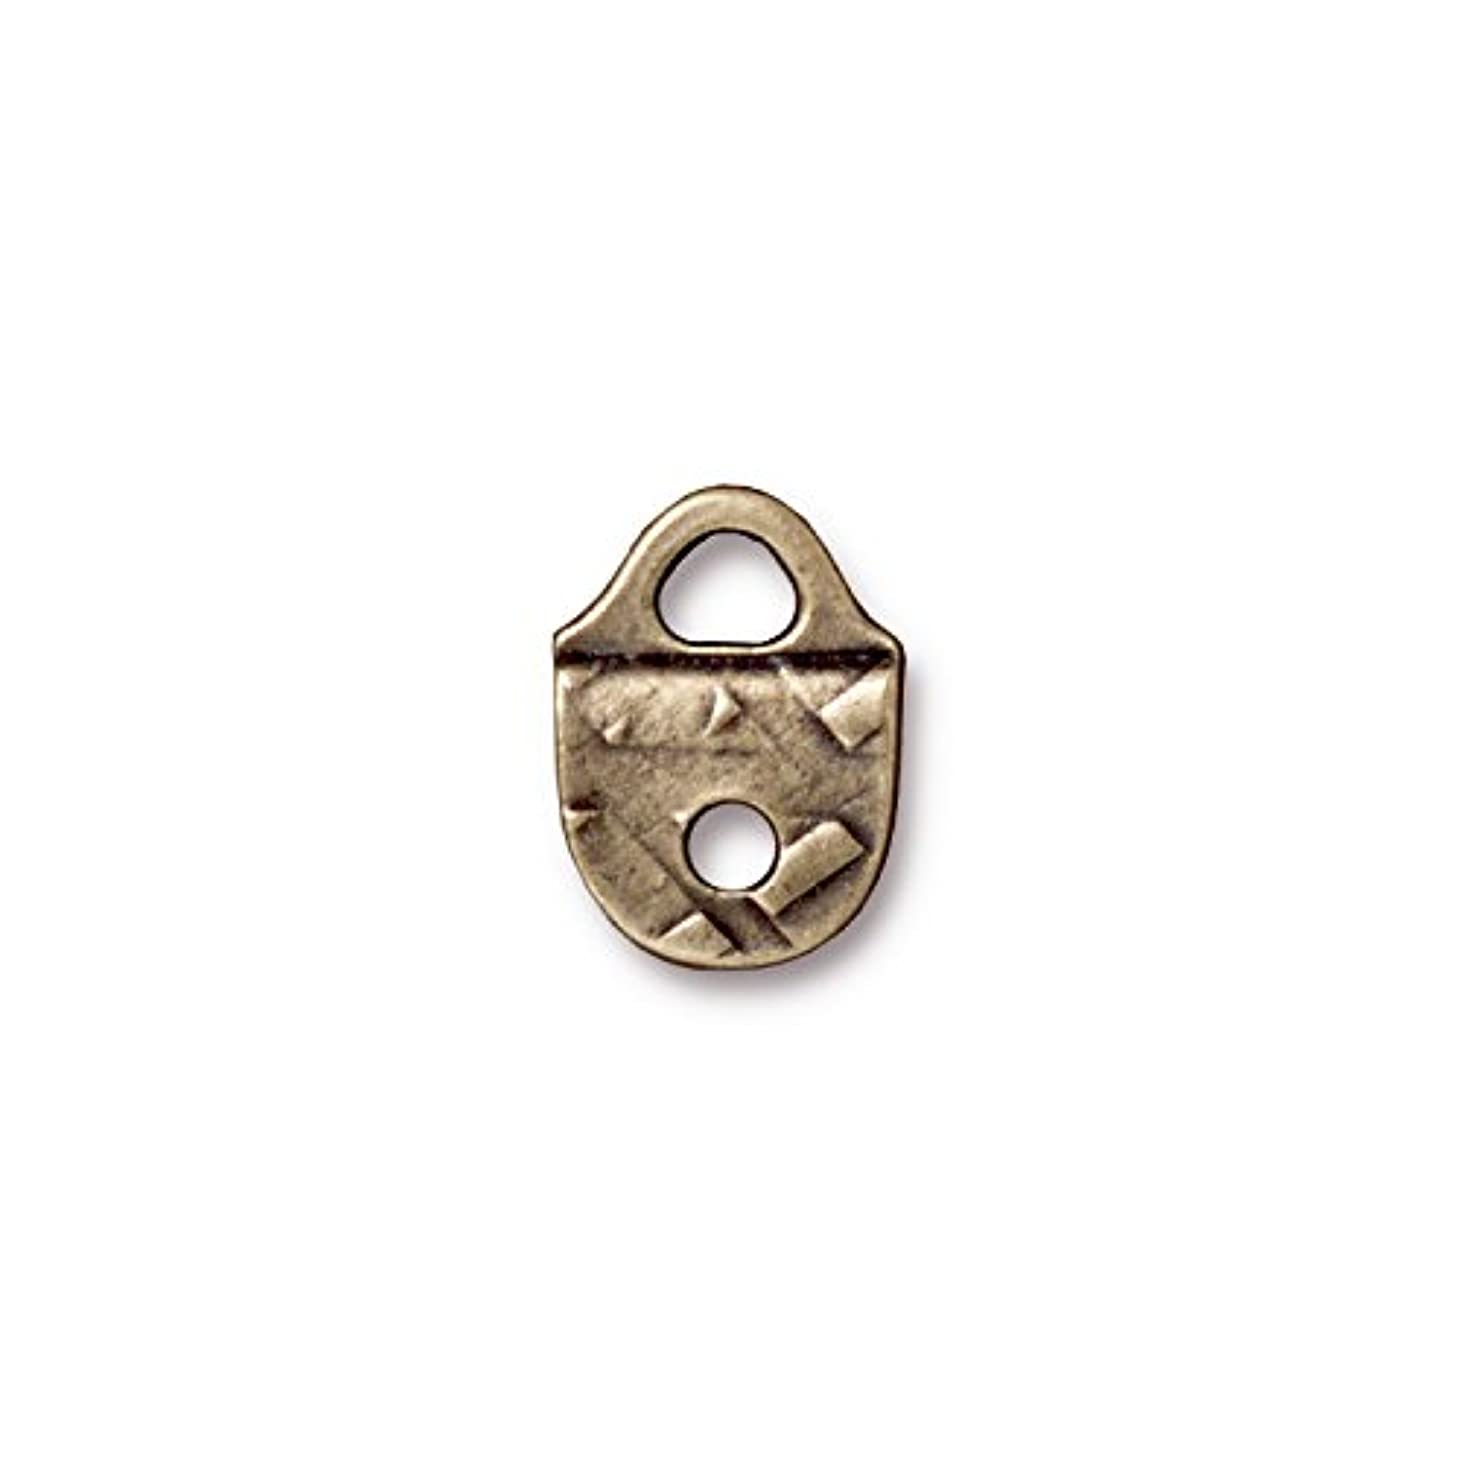 TierraCast End Link Rock and Roll, 12x16mm, Antique Brass Oxide Finish Pewter, 4-Pack